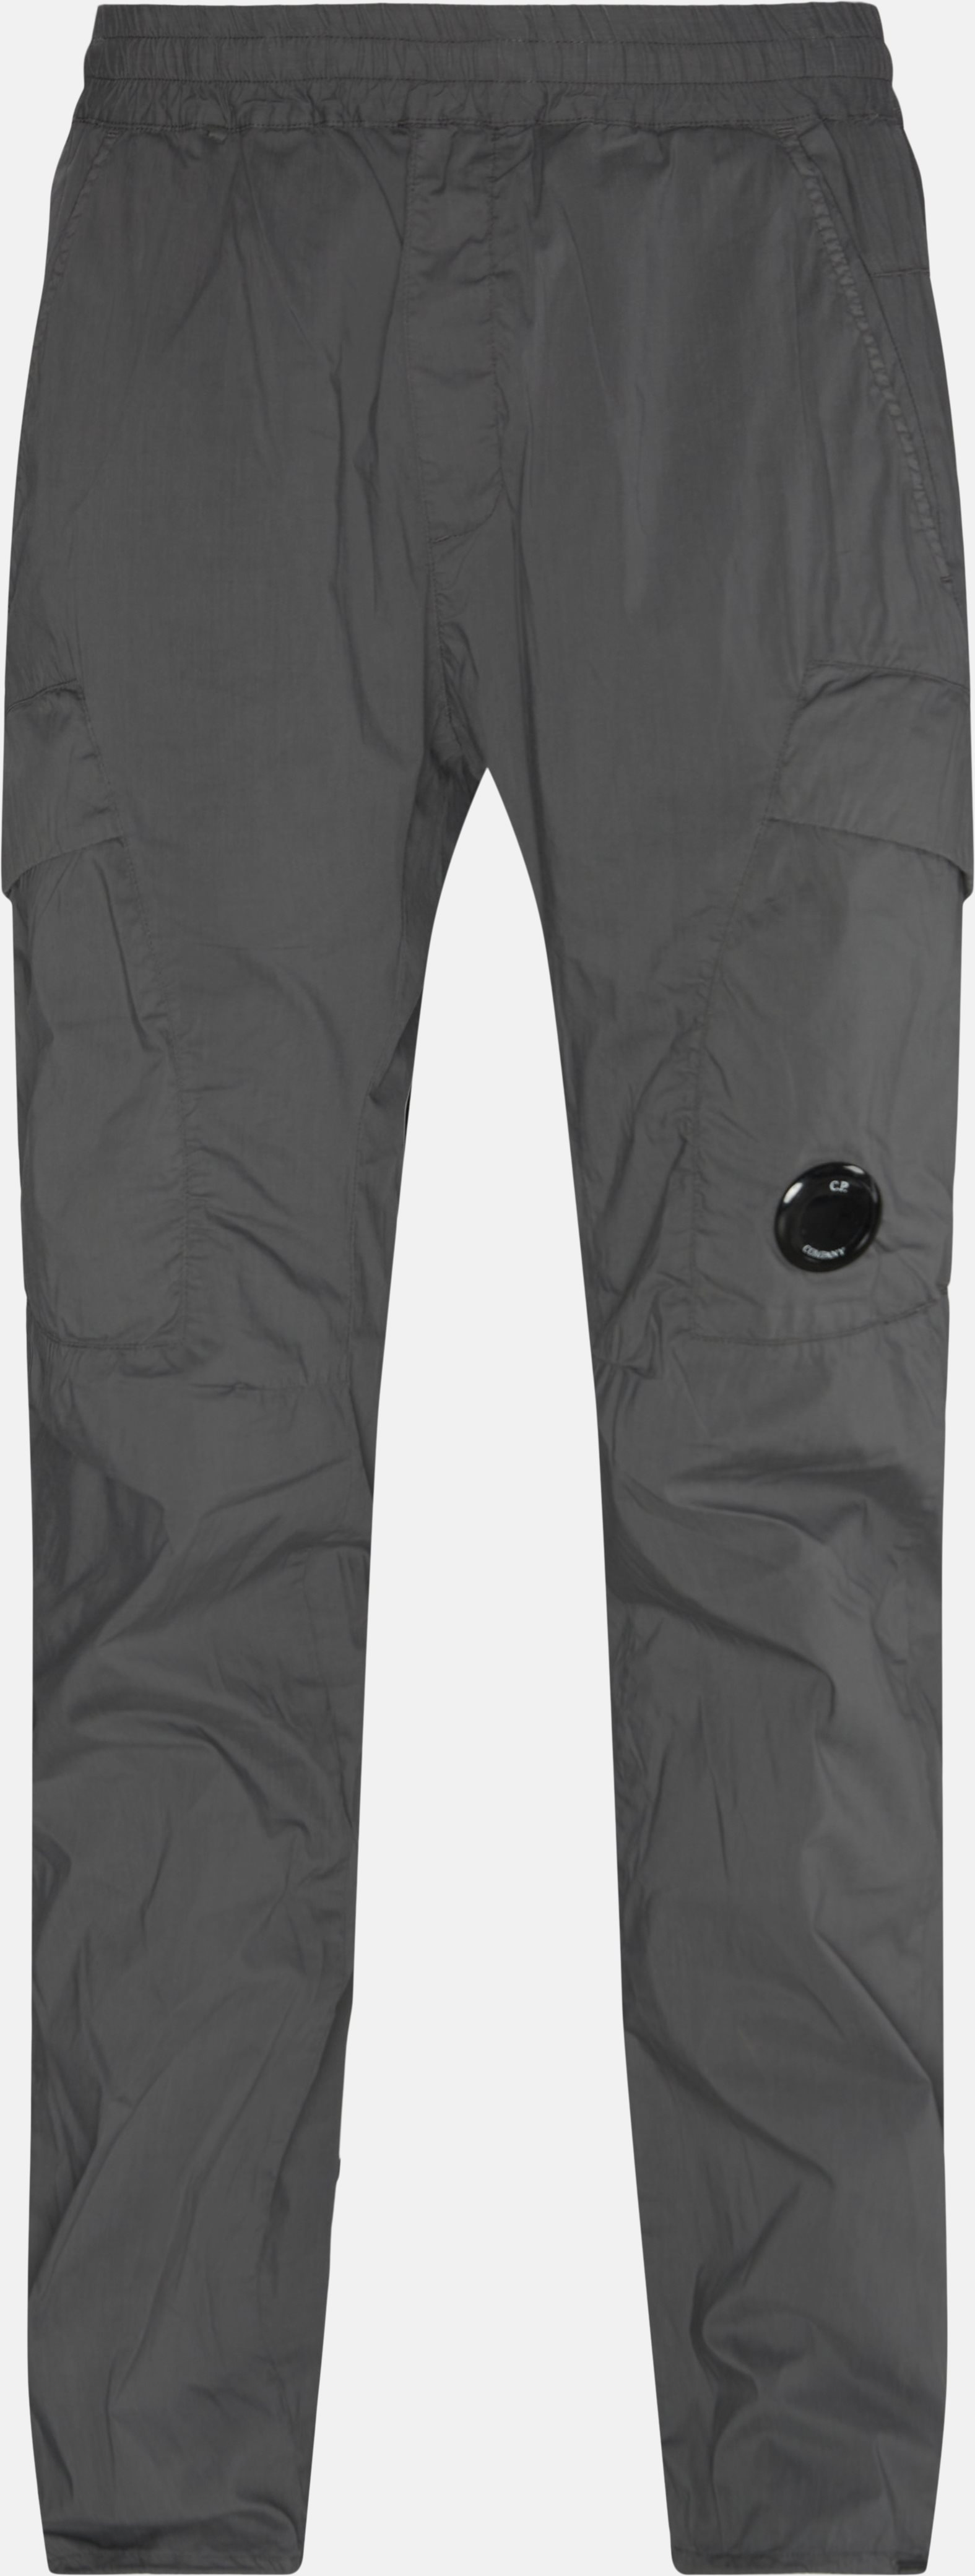 Logo Lens Pants - Bukser - Regular - Grå